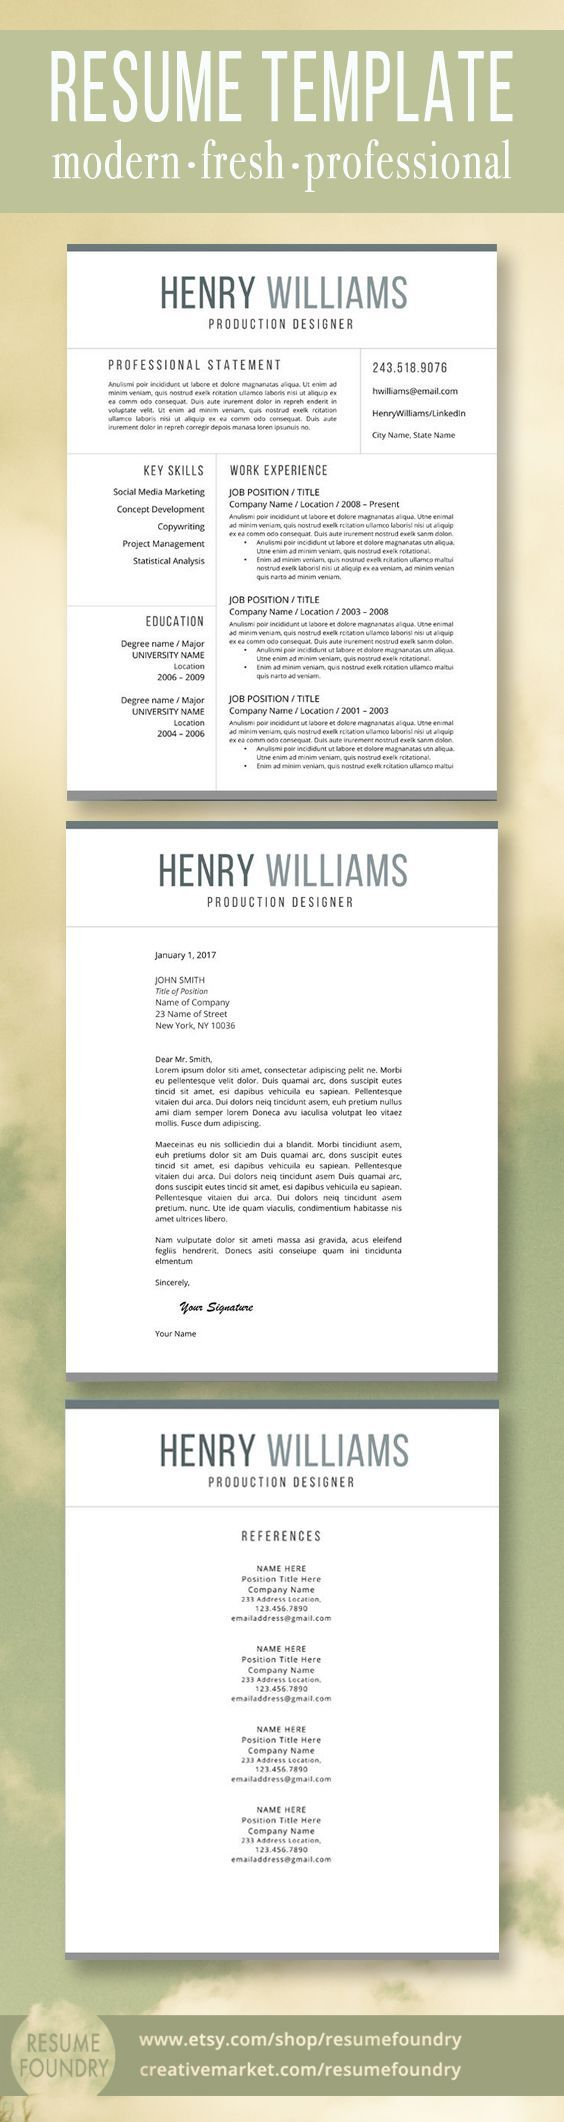 207 best professional resumes from resume foundry images on